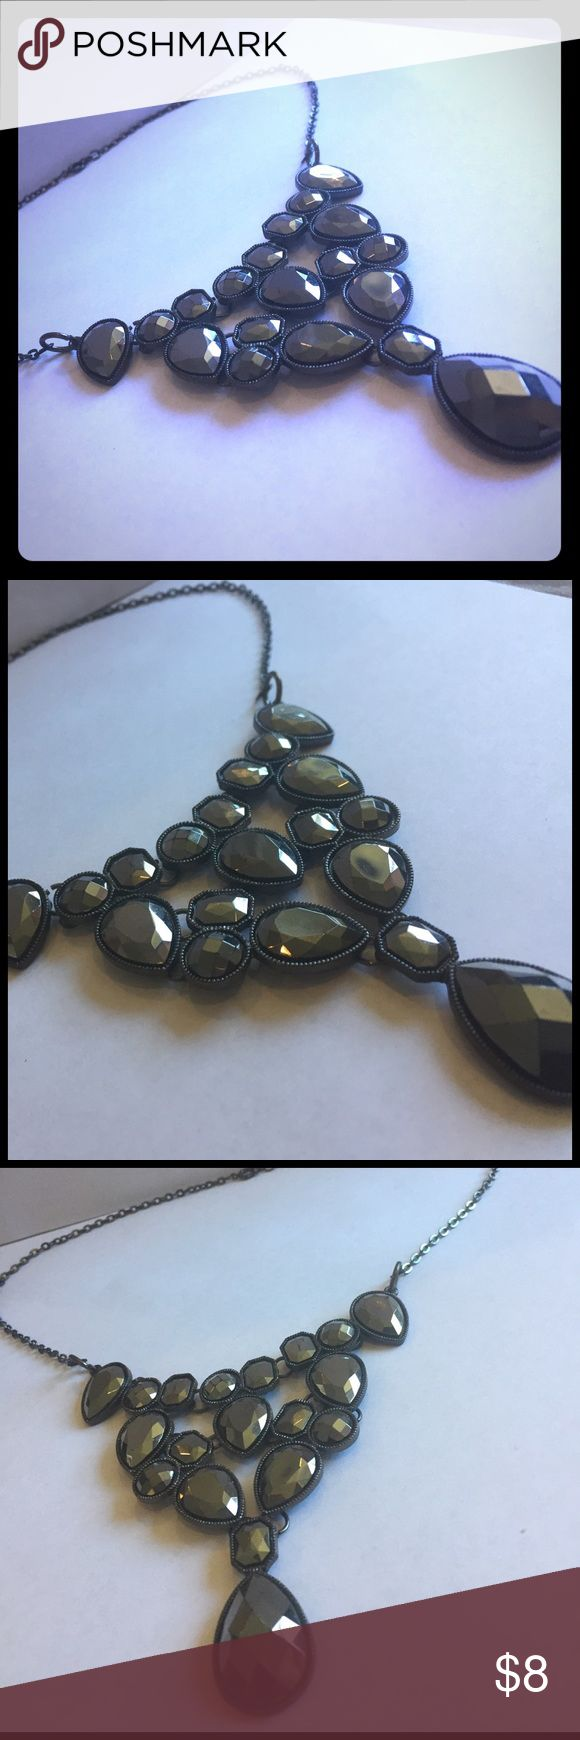 Charcoal & Black Chunky Silver Necklace Dress up any outfit with a charcoal silver and black accented bulky necklace. Jewelry Necklaces